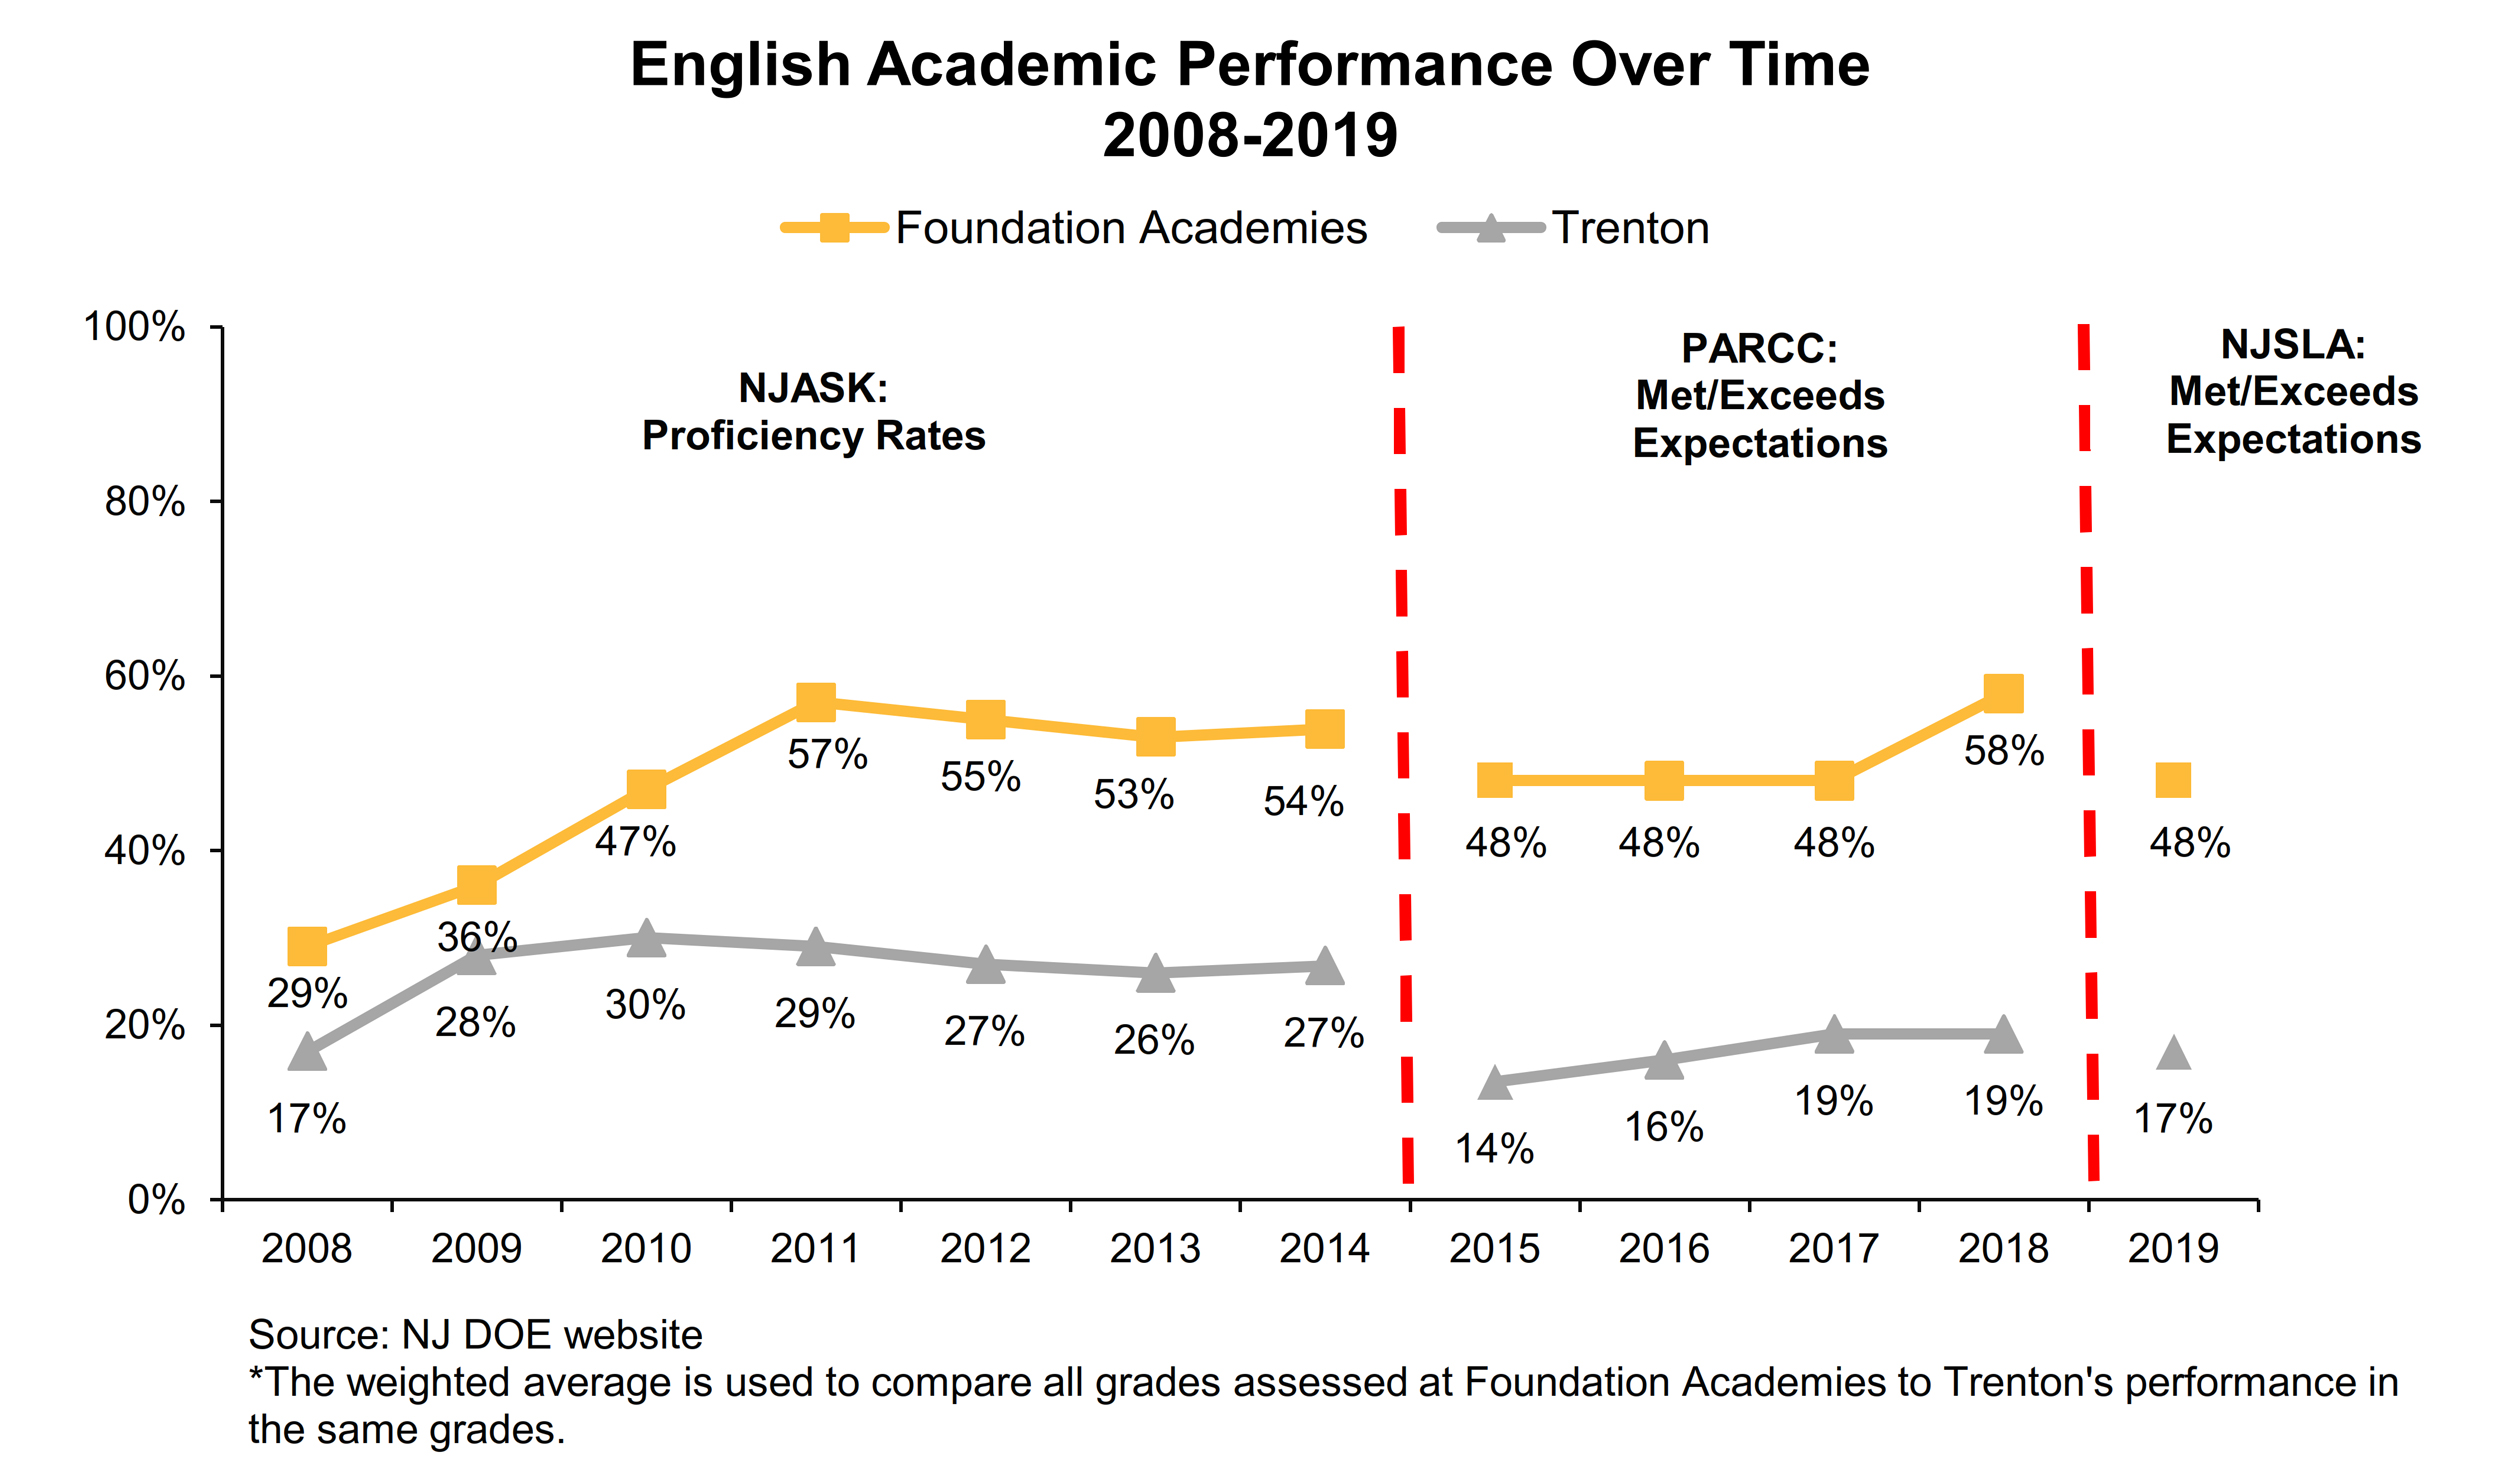 2008-2019 English Language Arts Academic Performance Over Time: Comparing Trenton to Foundation Academies